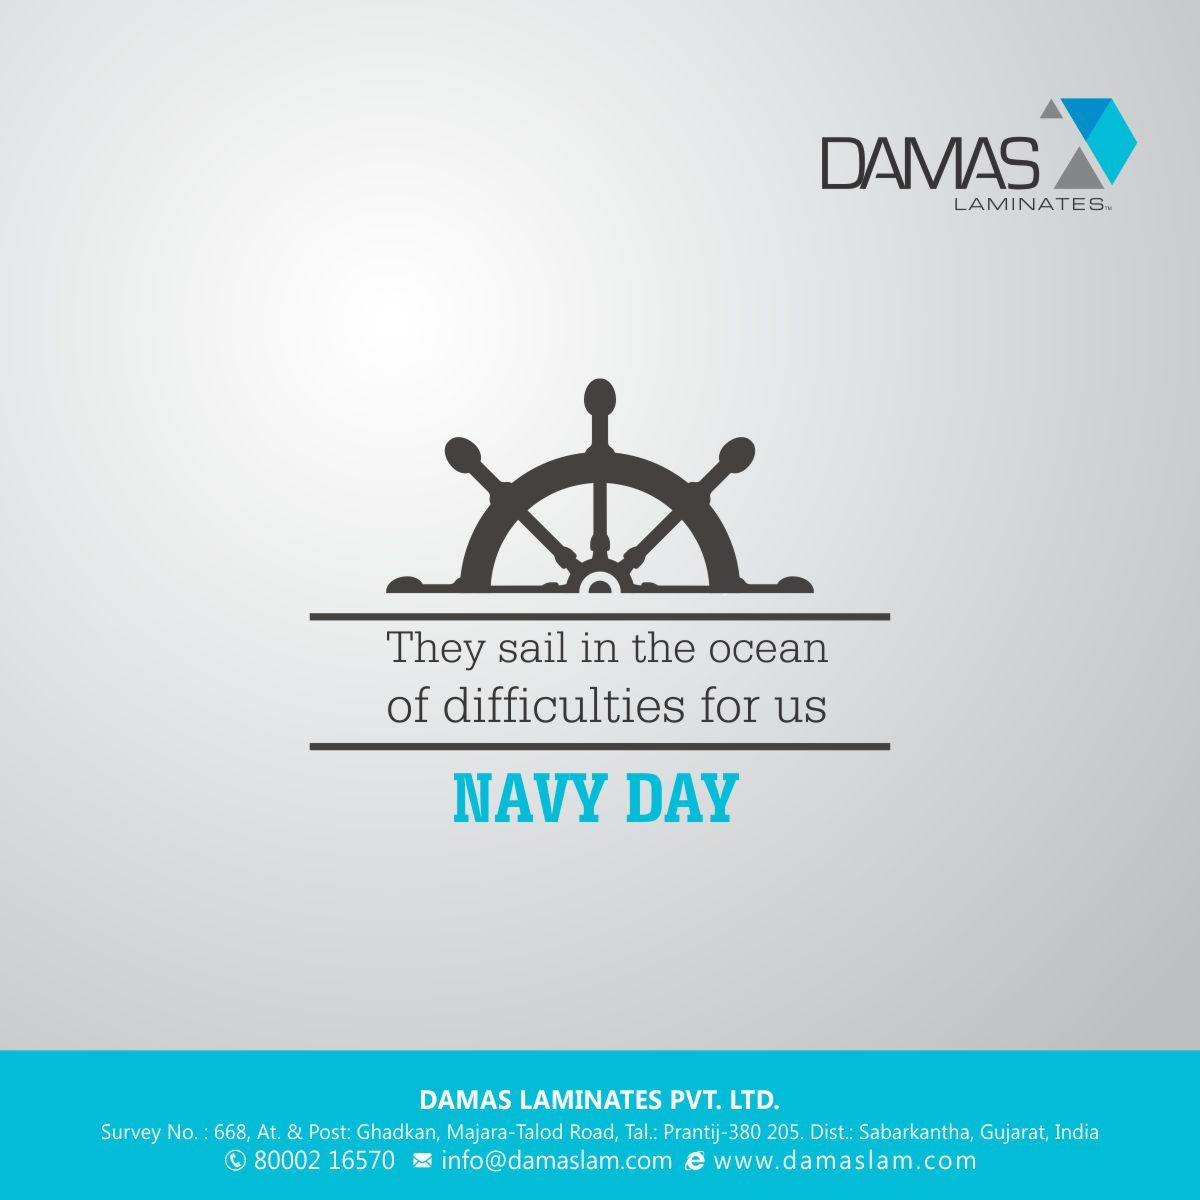 They Sail In The Ocean Of Difficulties For Us Indian Navy Day Damaslaminats Damaslam Indian Navy Day Navy Day Indian Navy Day Indian Navy